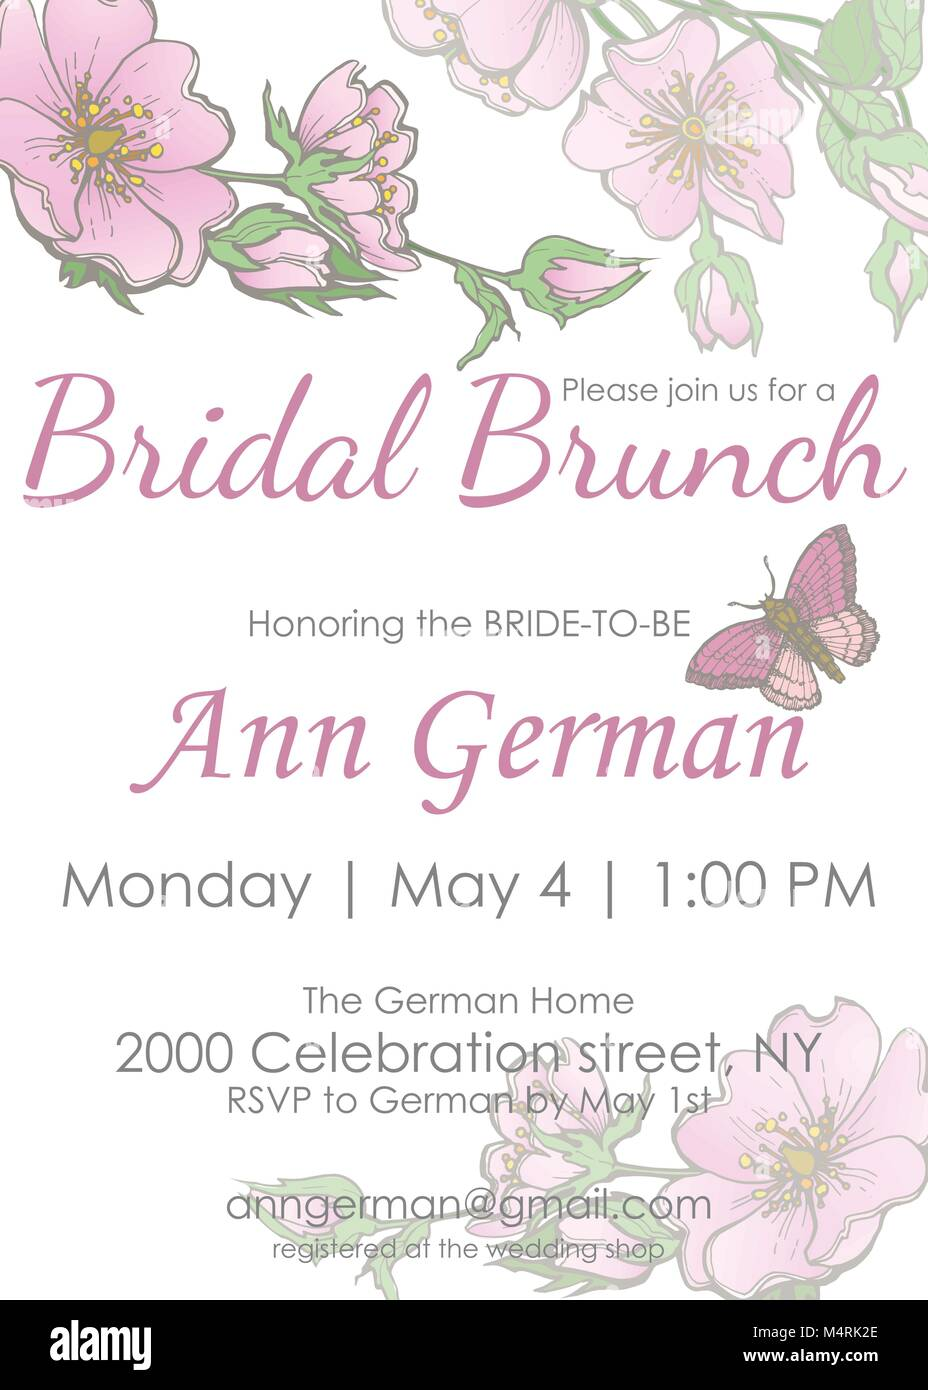 bridal shower bridal brunch invitation vector template with flowers